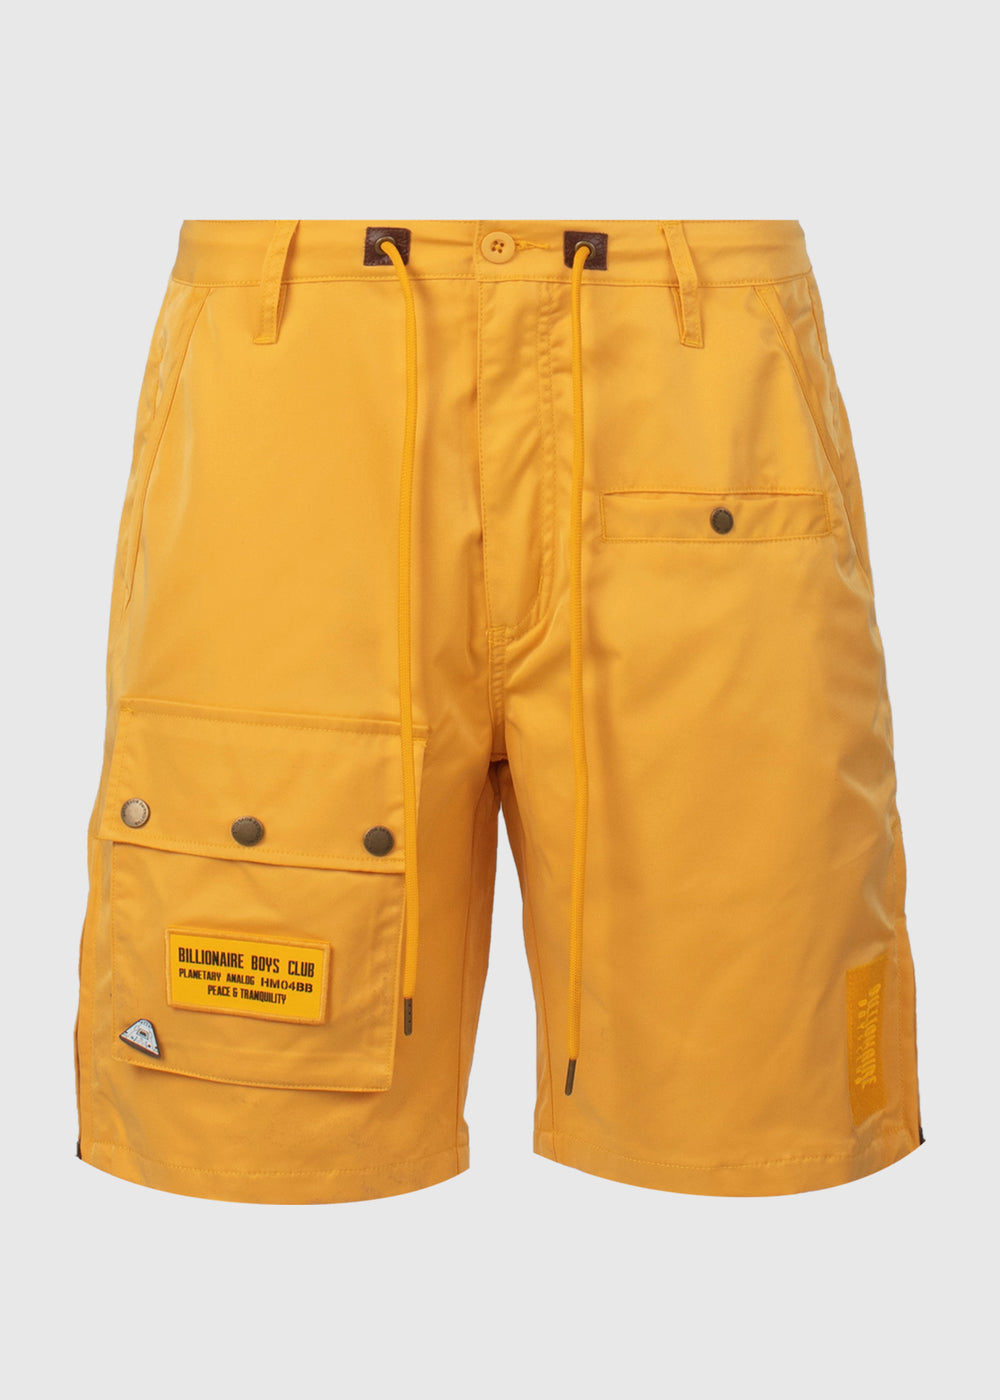 billionaire-boys-club-aviator-shorts-891-6101-ylw-ylw-1